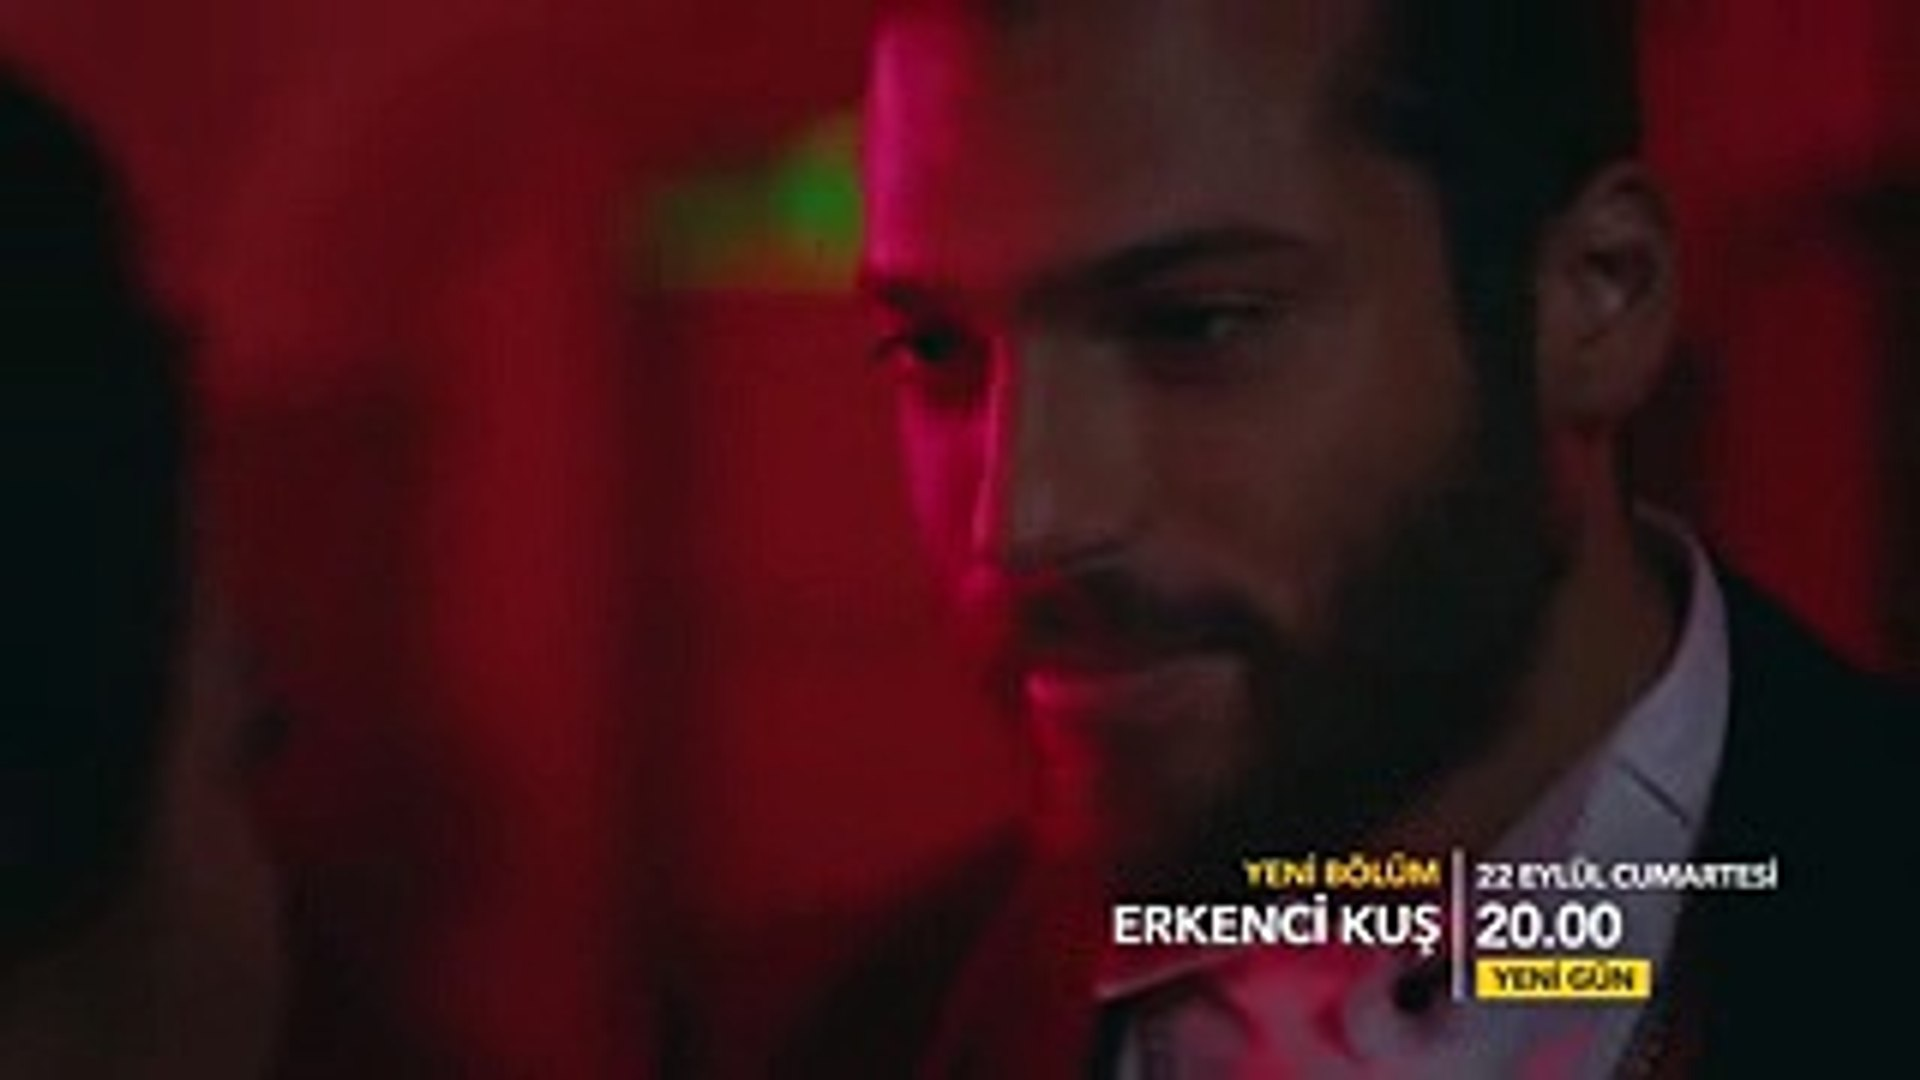 Erkenci Kuş Early Bird Trailer - Episode 12 (Eng & Tur Subs)